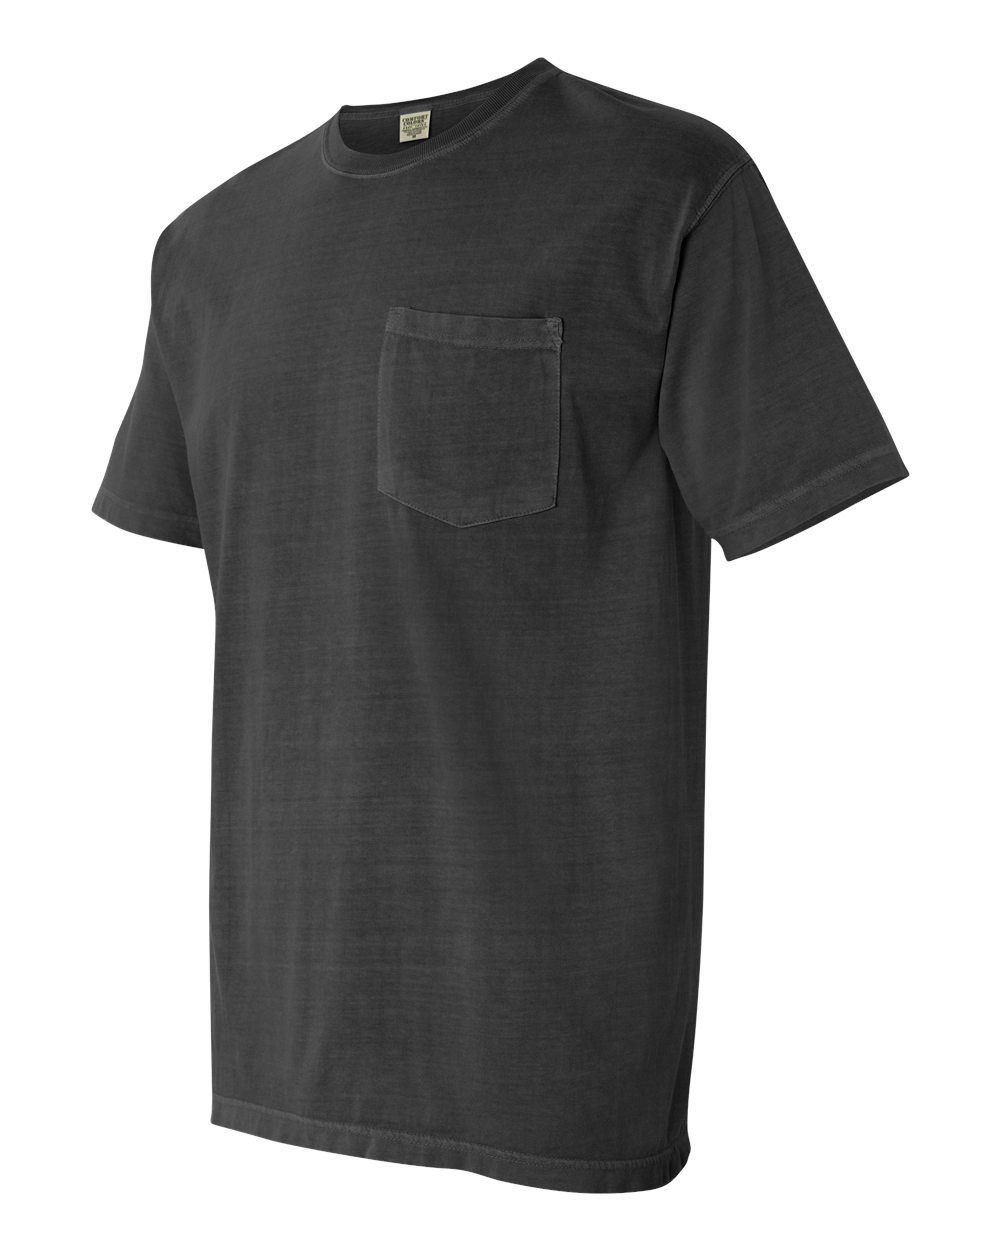 Comfort-Colors-Men-039-s-6-1-oz-Garment-Dyed-Pocket-T-Shirt-6030CC-S-3XL thumbnail 66